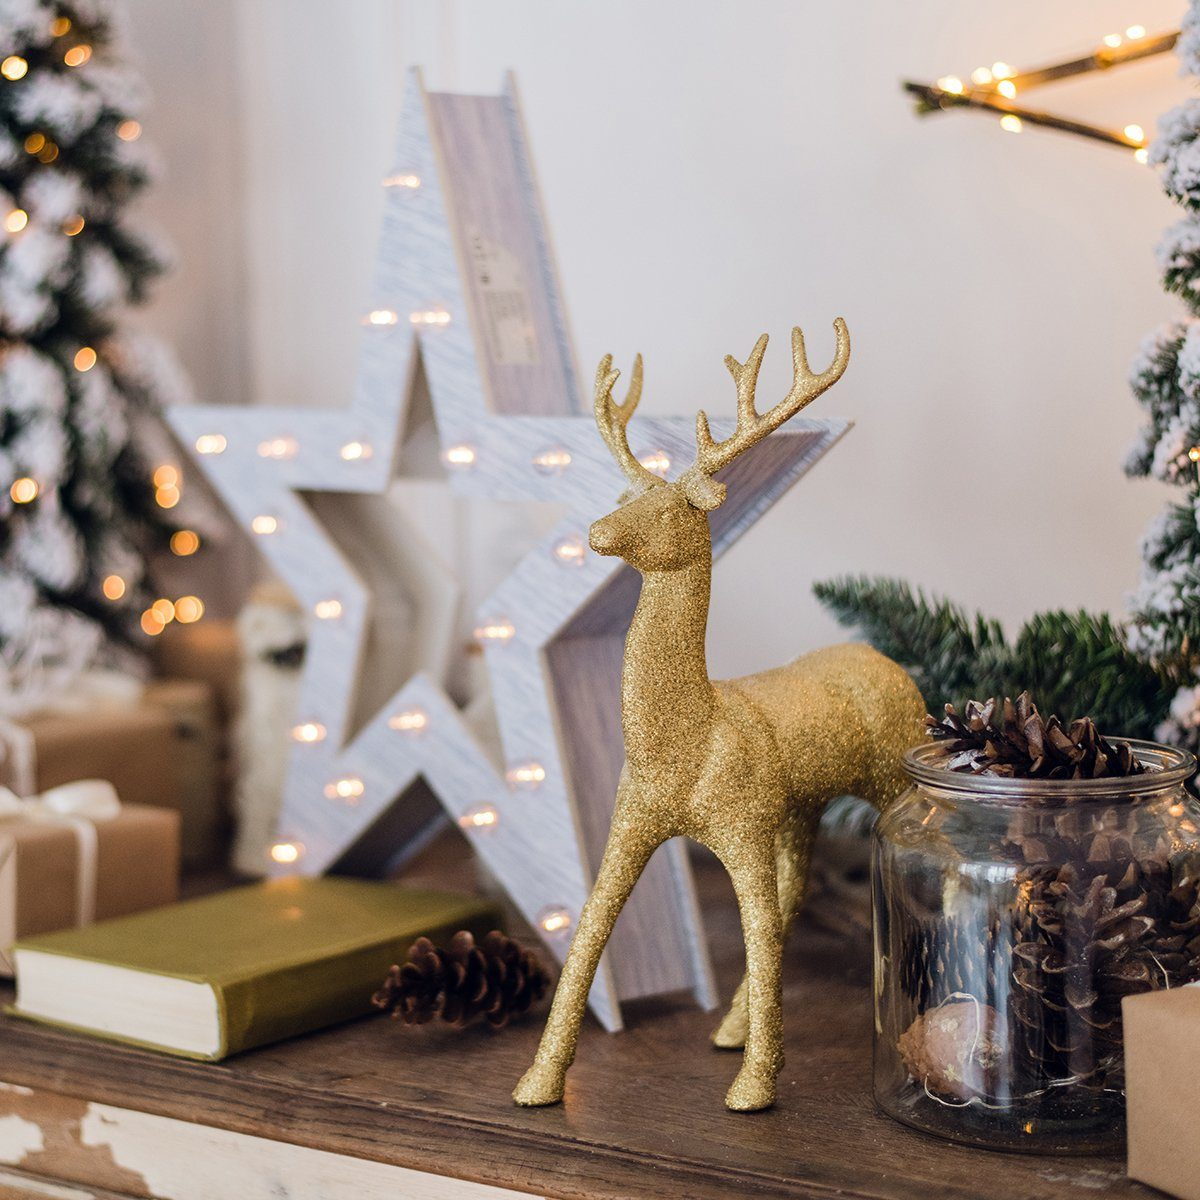 winter still life with Christmas decorations toy deer, star and gift boxes